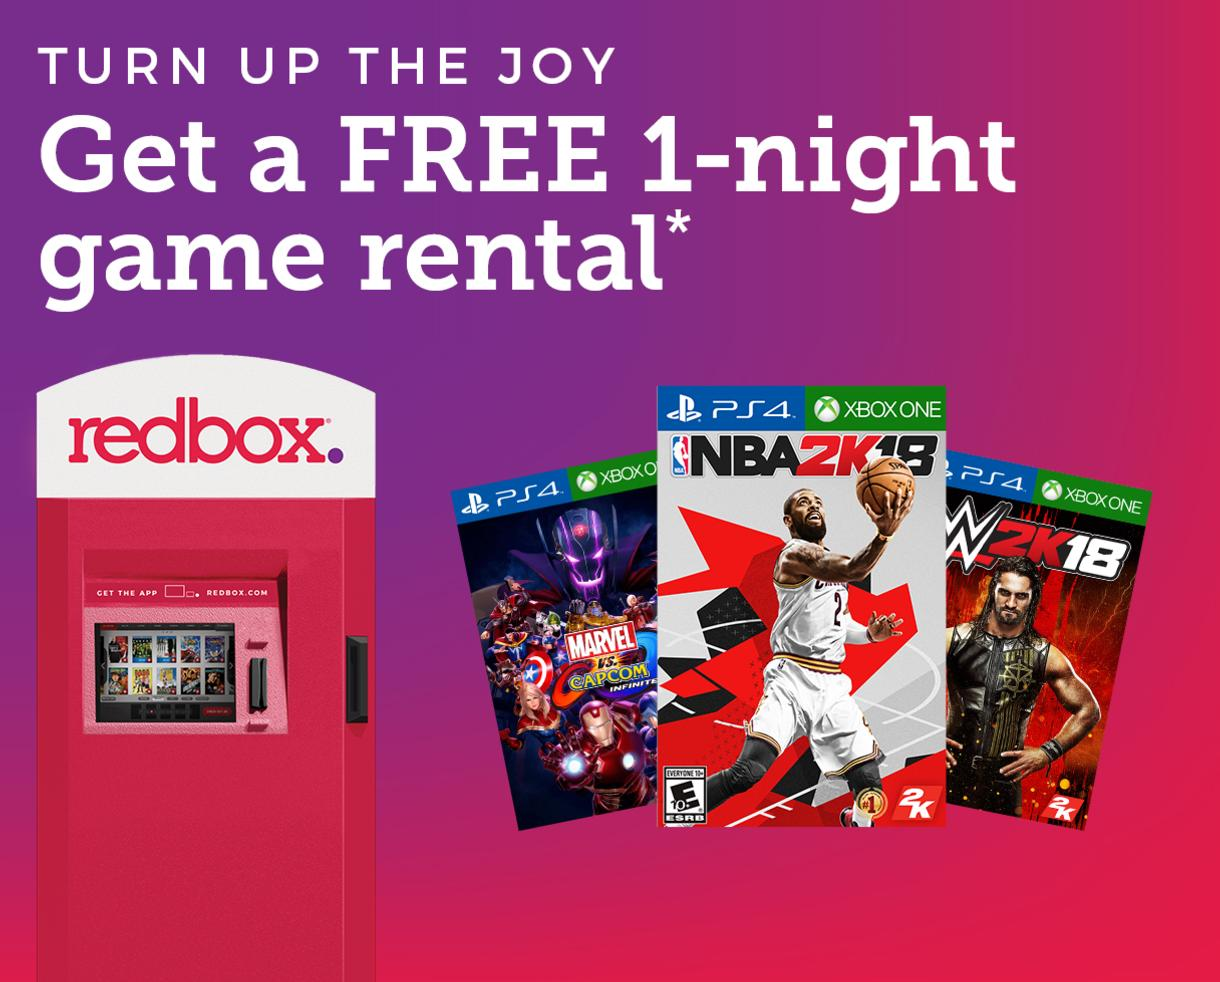 Do you rent video games from kiosk-based rental company Redbox? If so, you'll soon be paying more. The company on Monday announced a price hike for games.